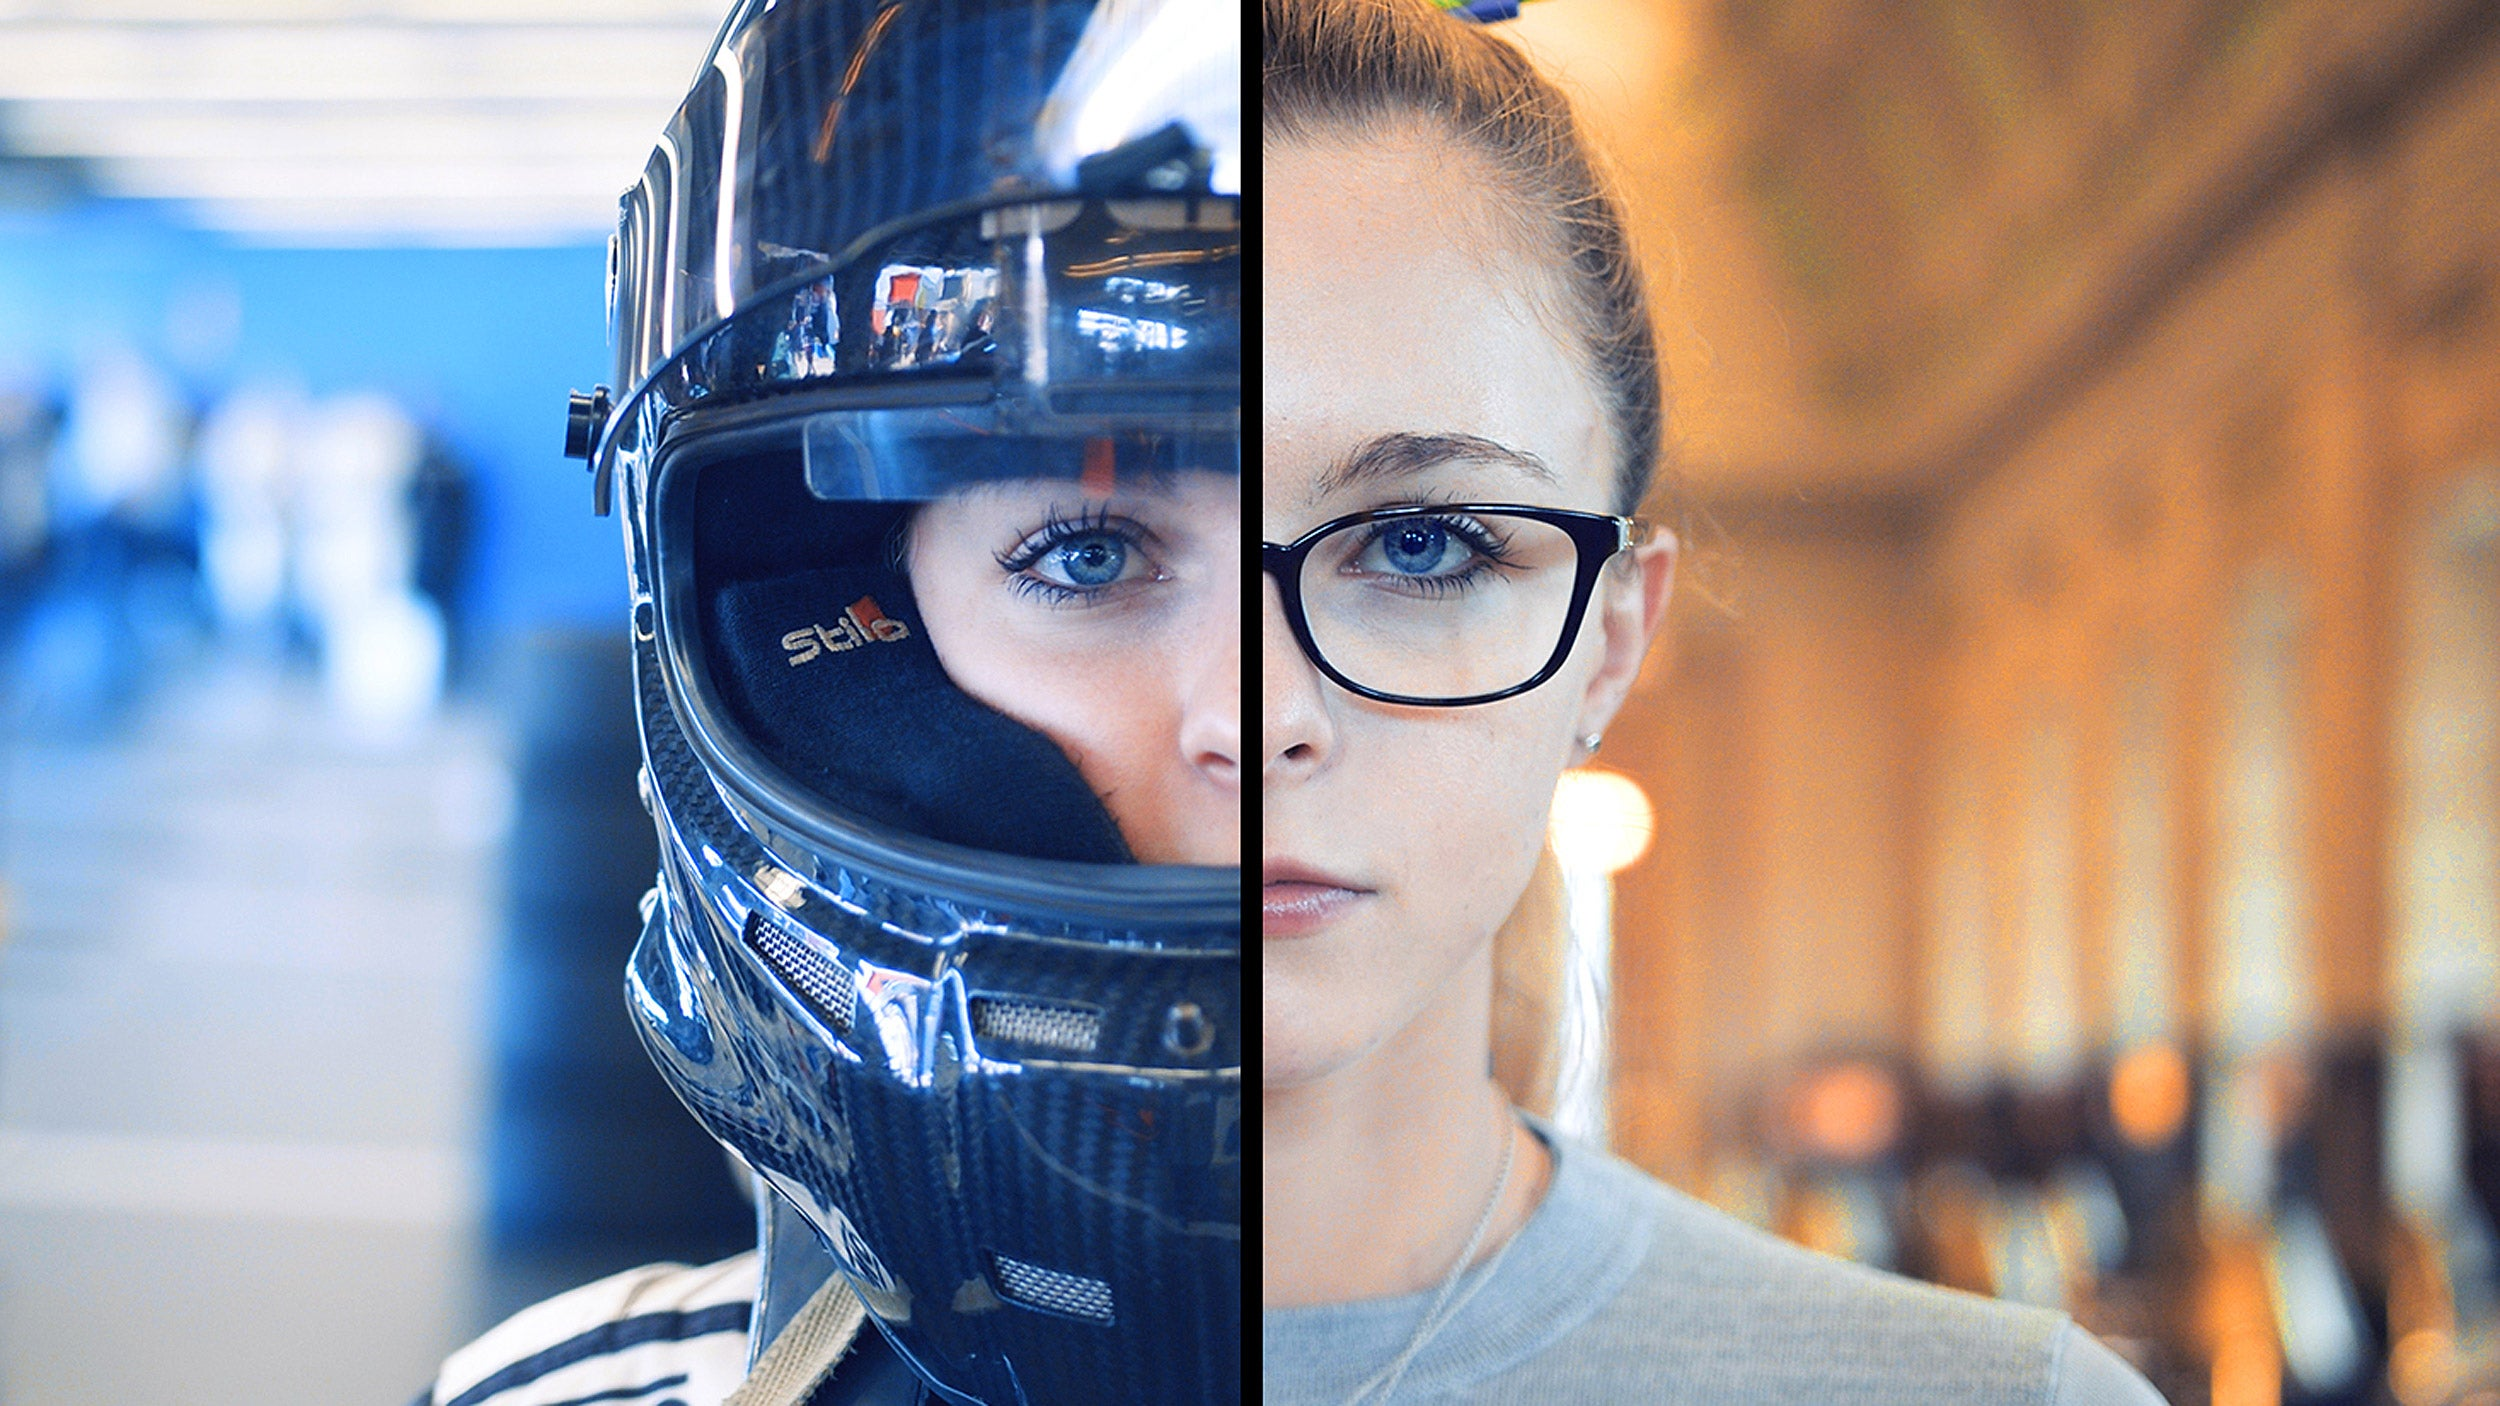 Harvard student and race-car driver Aurora Straus competes with purpose